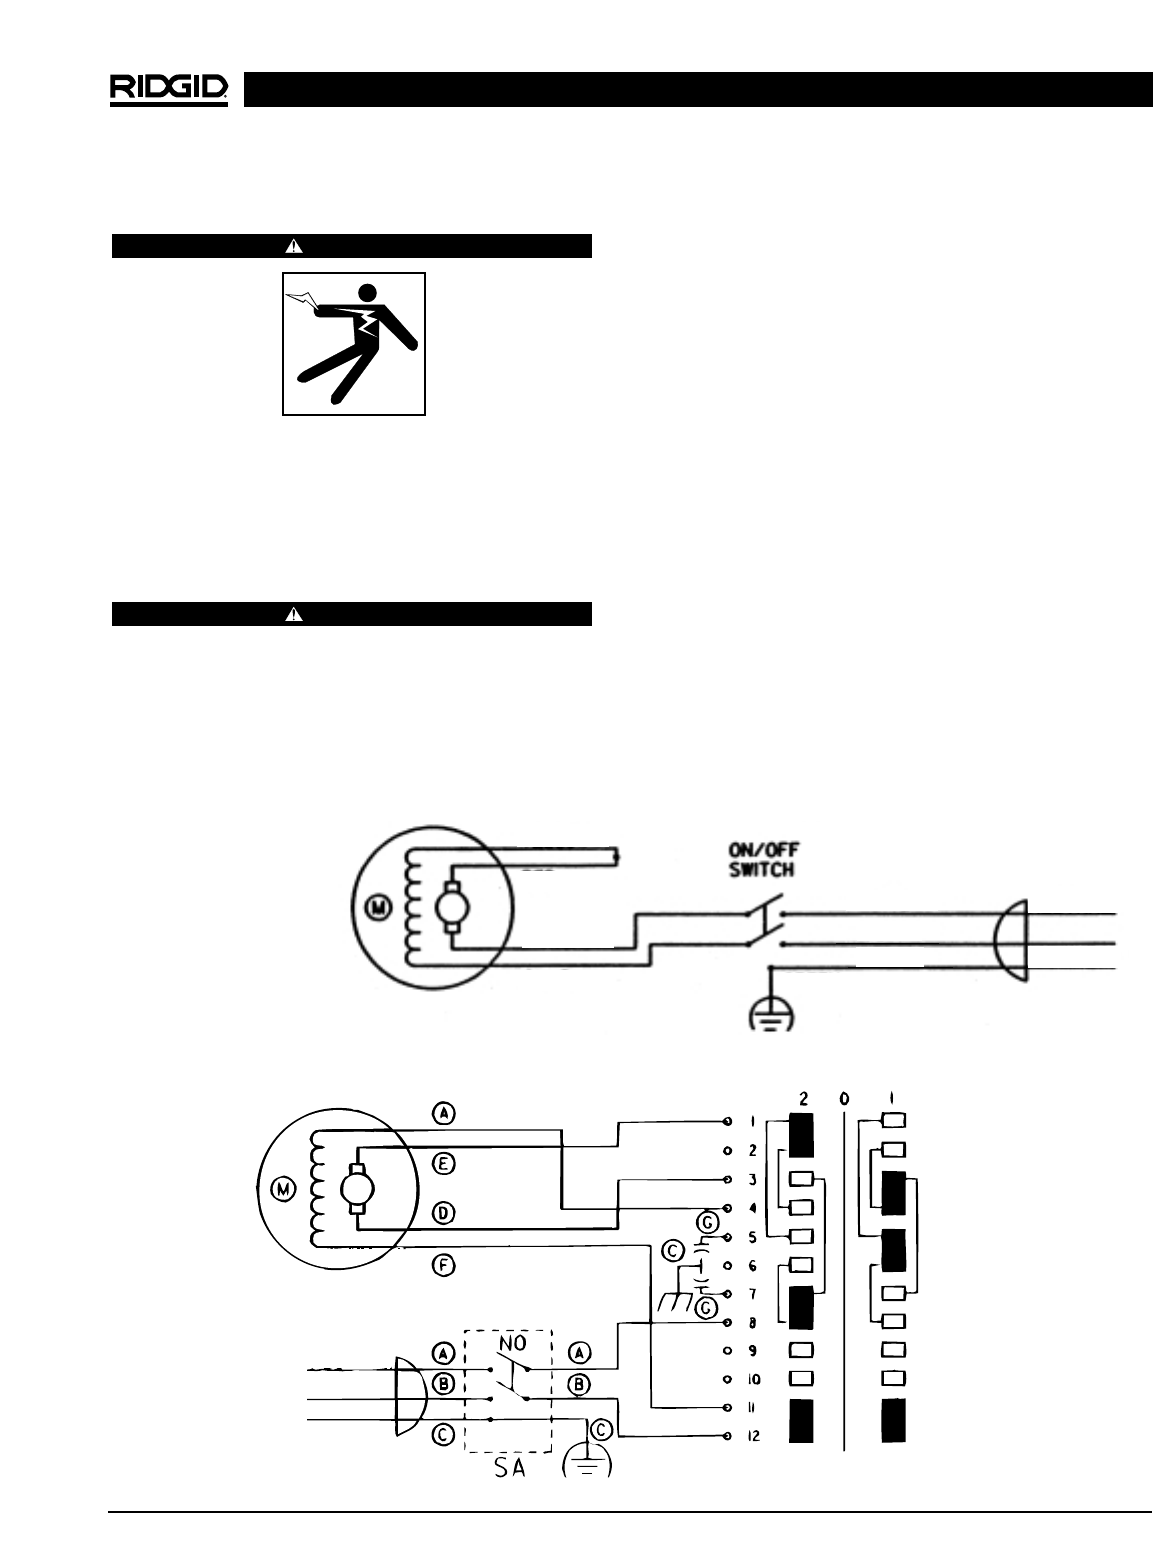 68b109bc 3c1f 445d 9958 08de9edaa37c bg13 page 19 of ridgid sewing machine 300 user guide manualsonline com ridgid 300 wiring diagram at metegol.co